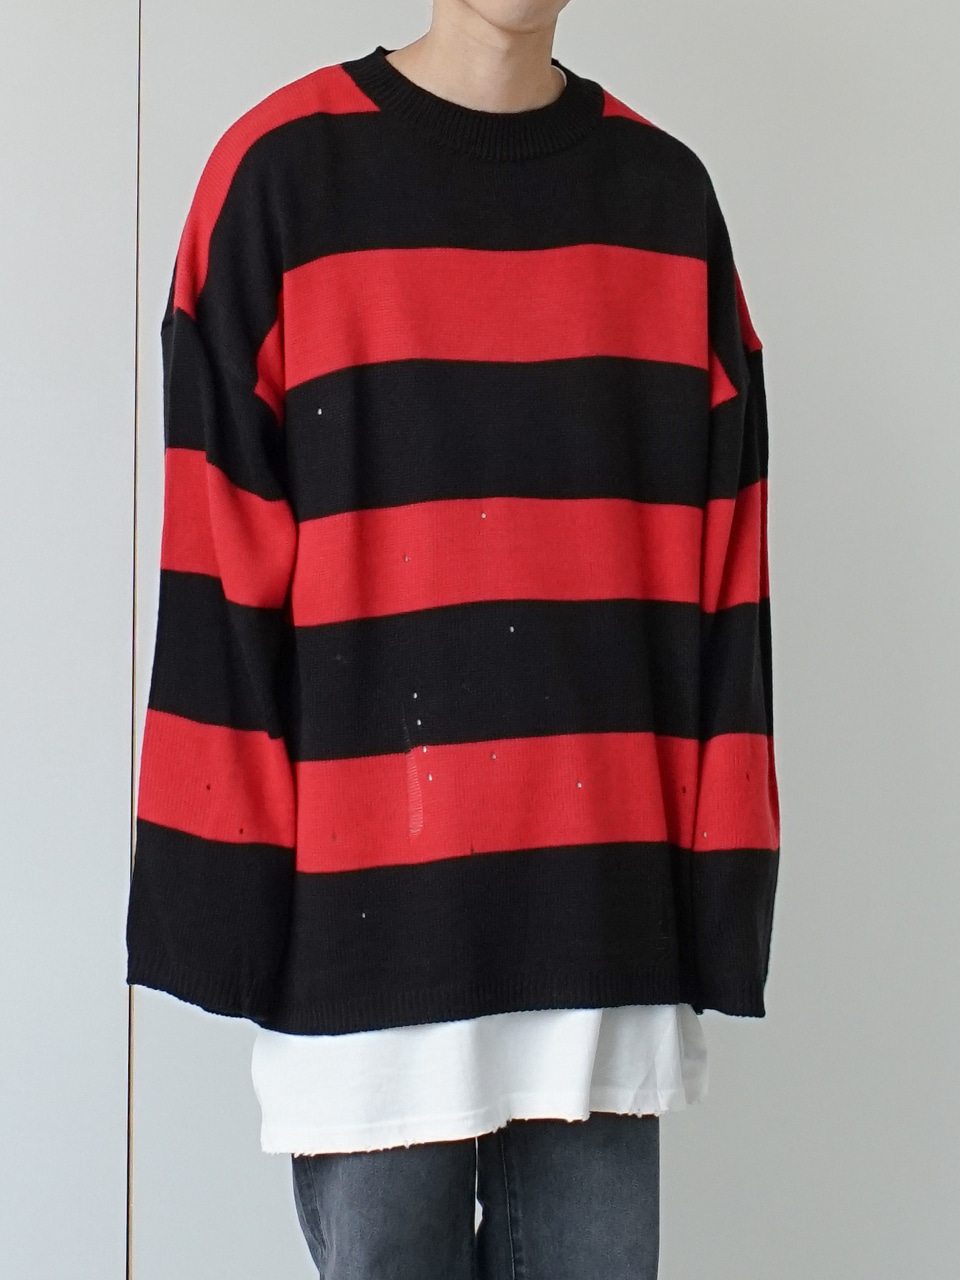 Pare Stripe Damaged Knit (4color)